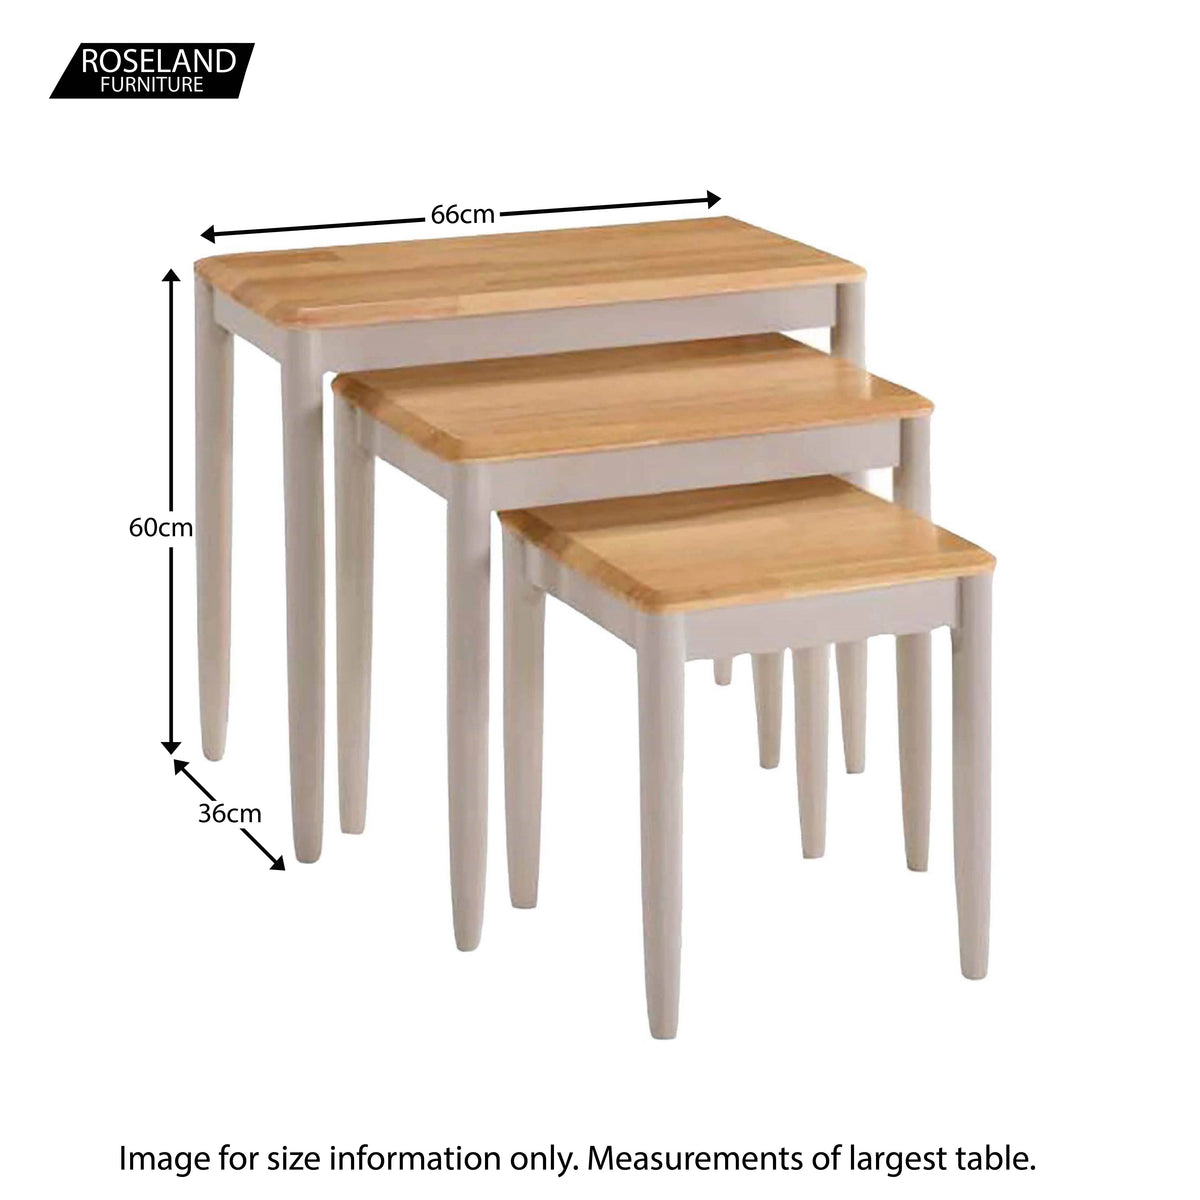 Altona Nesting Tables - Size Guide